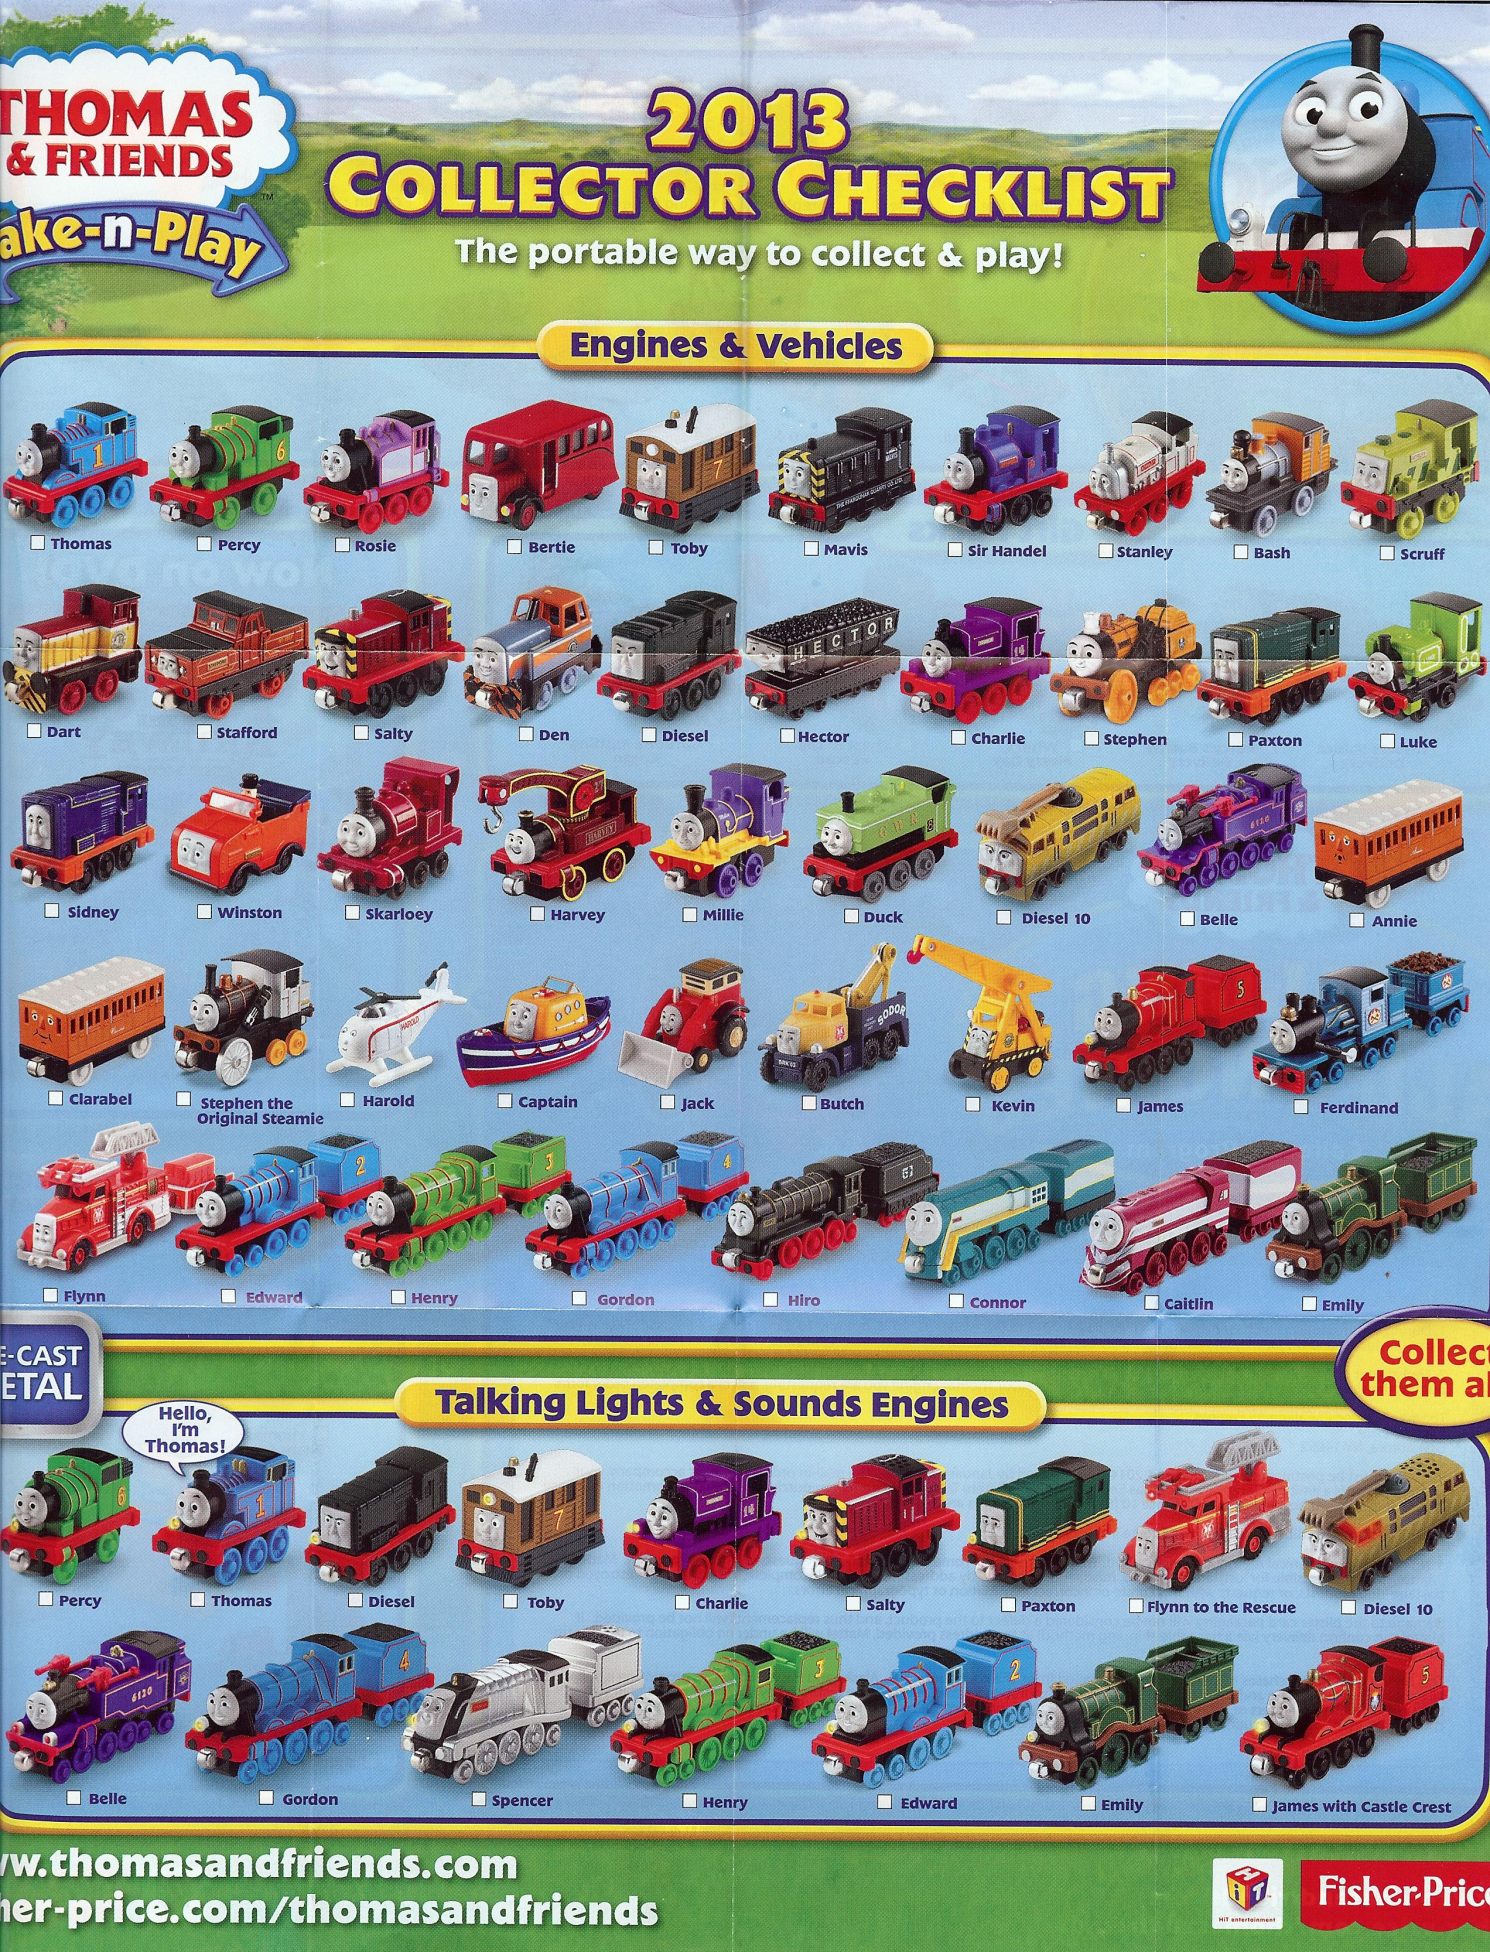 harold the helicopter toy with File Take N Play2013collectorposter2 on 361375325067 as well File Take N Play2013CollectorPoster2 further Watch likewise Watch as well Toy Thomas Engine 7Nqg9hGNUvmSI.